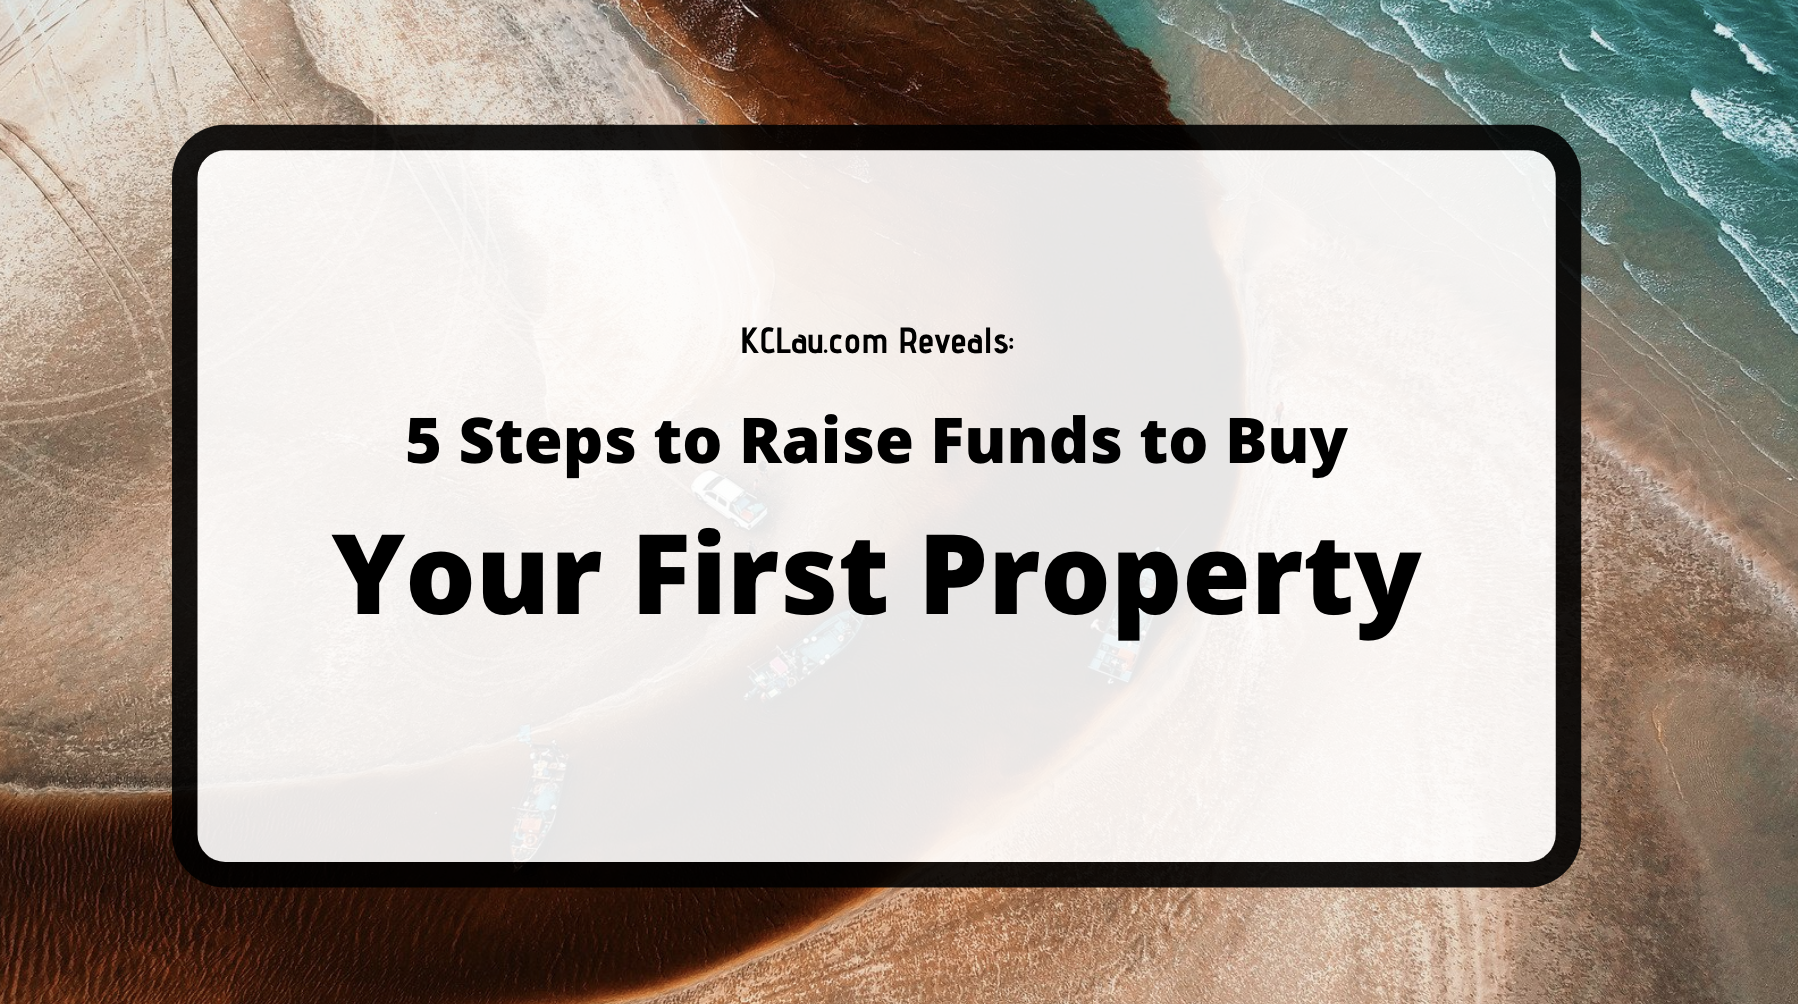 5 Steps to Raise Funds to Buy Your First Property